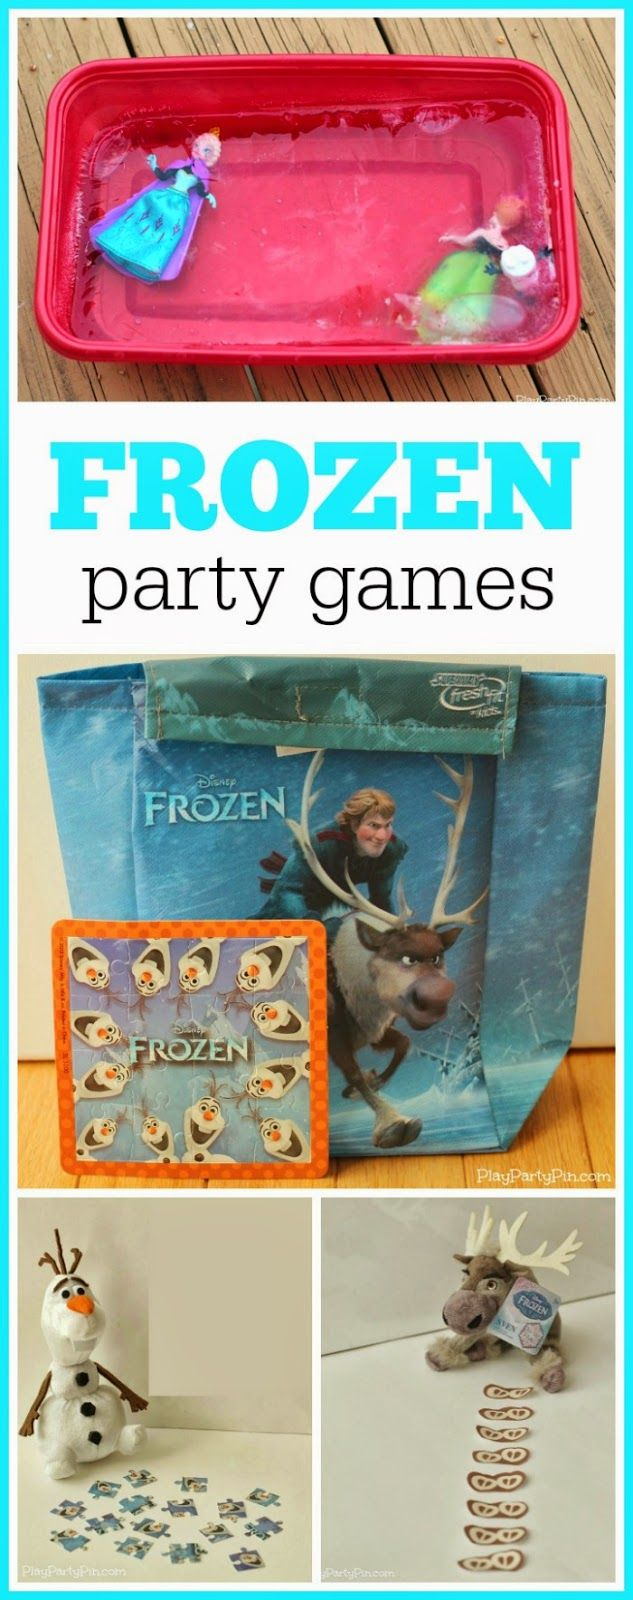 20 disney frozen party games that are better than a warm hug - Disney Princess Games And Activities